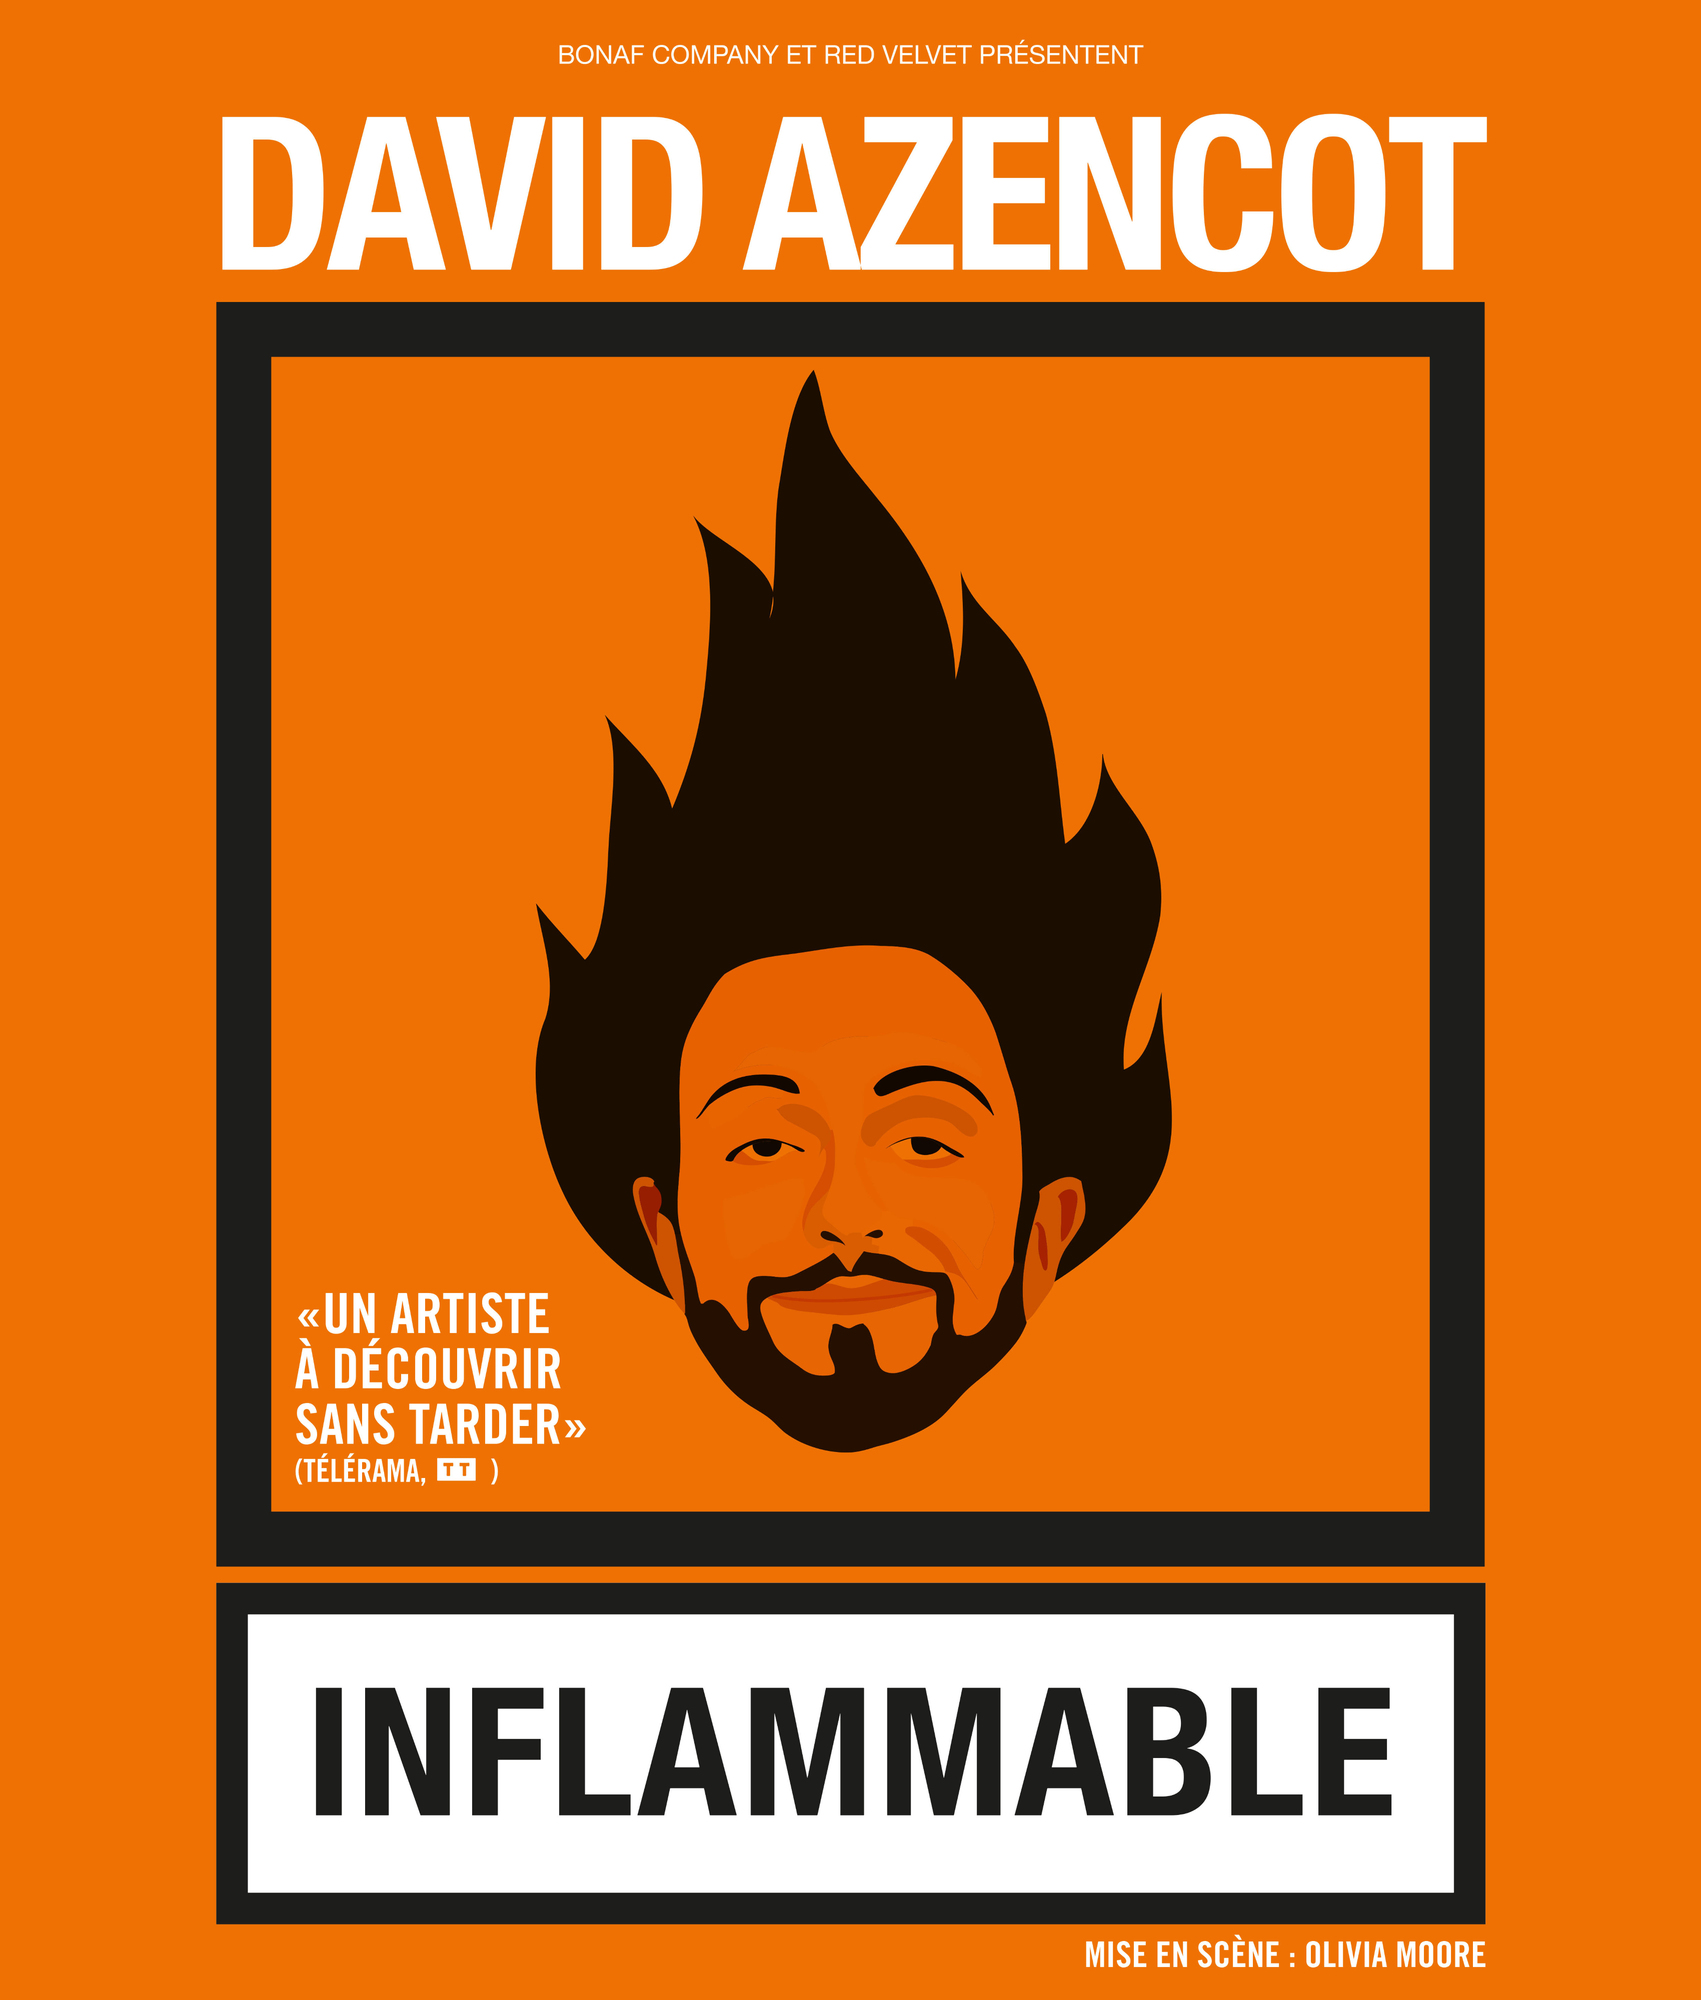 DAVID AZENCOT - INFLAMMABLE SIX FOURS LES PLAGES